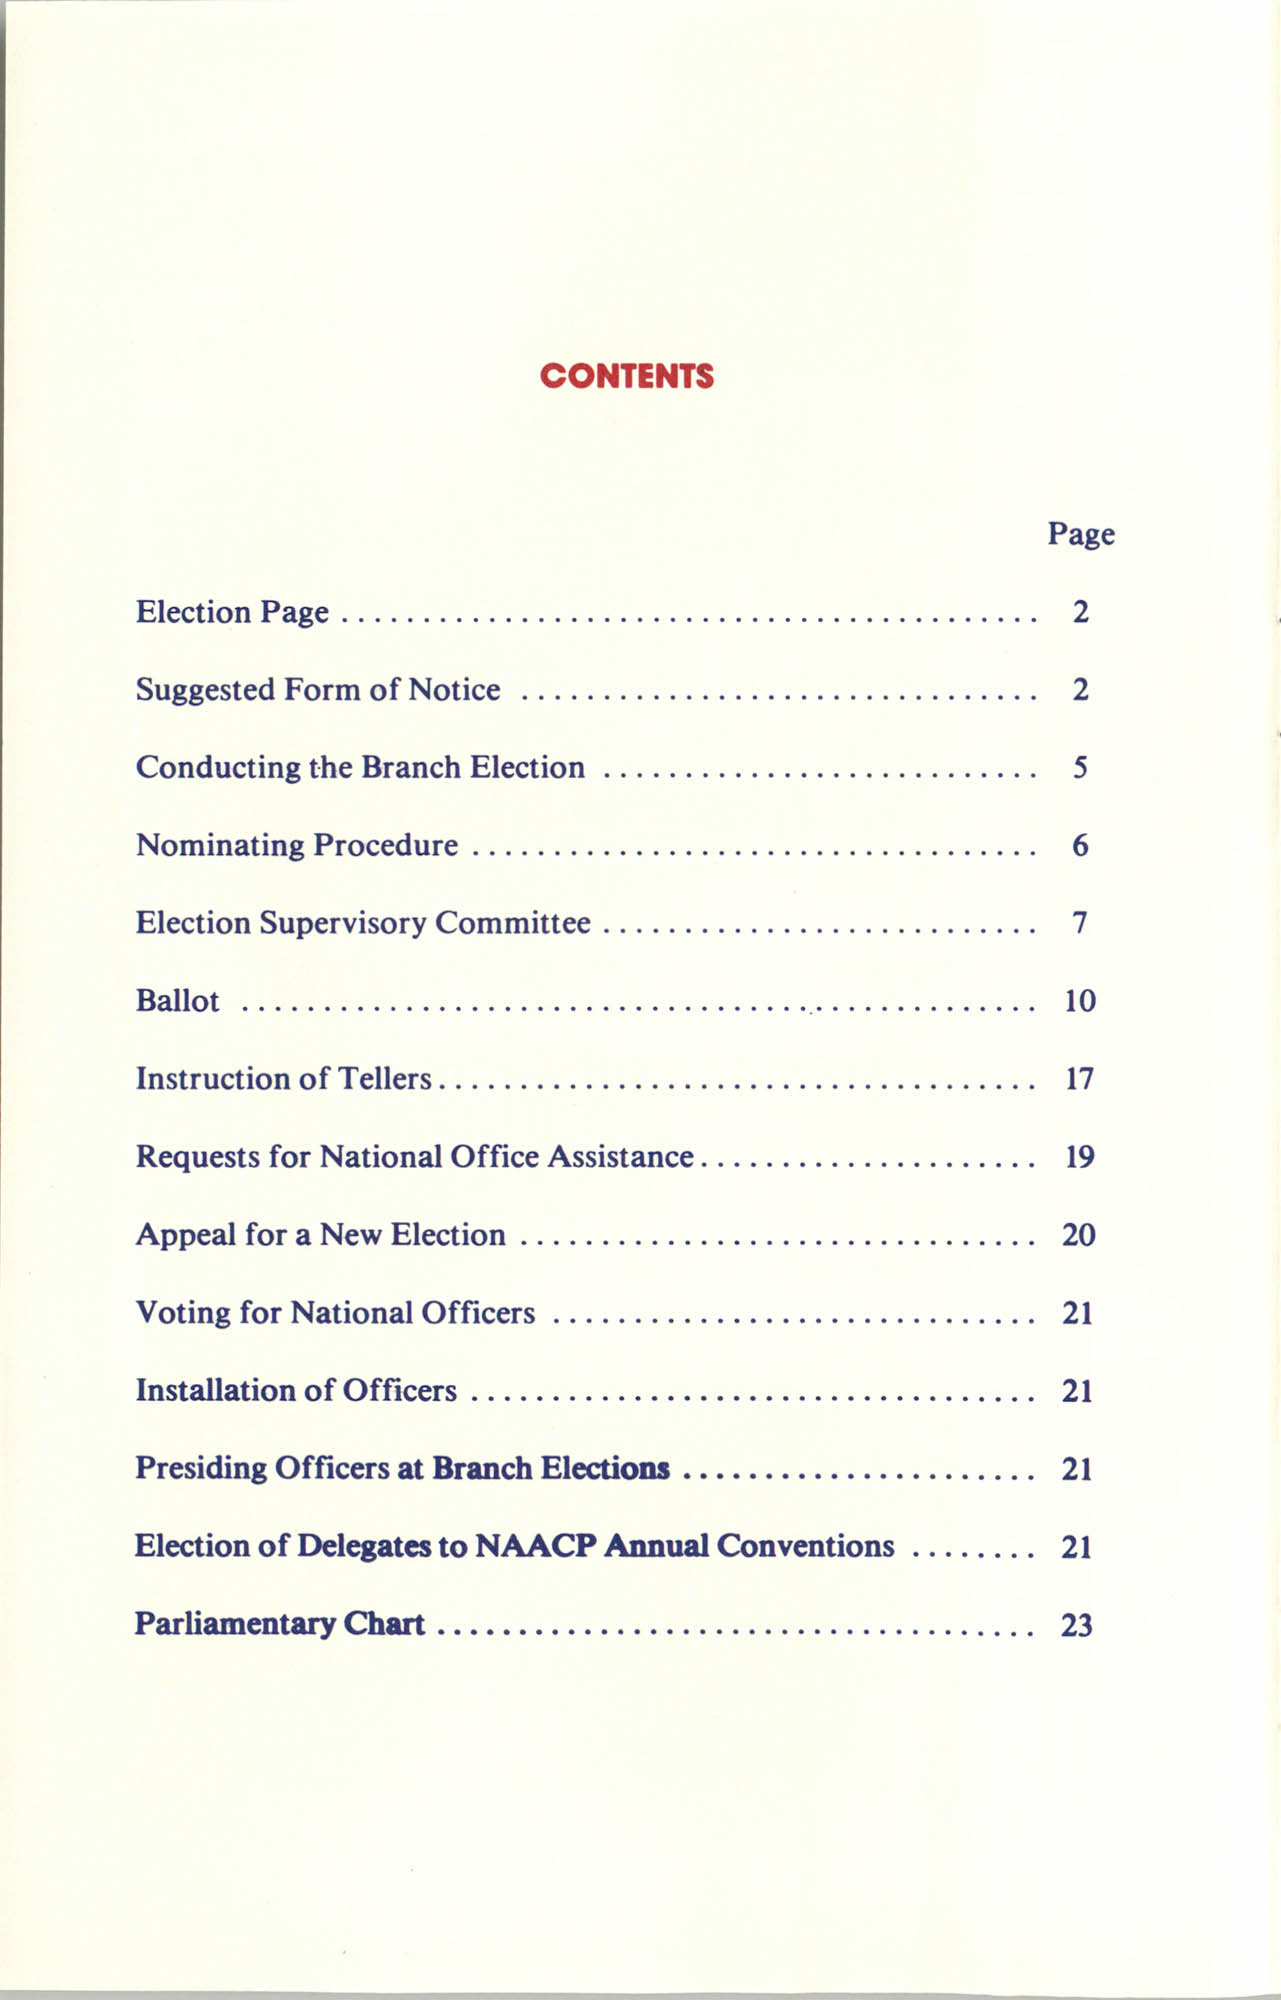 Manual on Branch Election Procedure, Contents